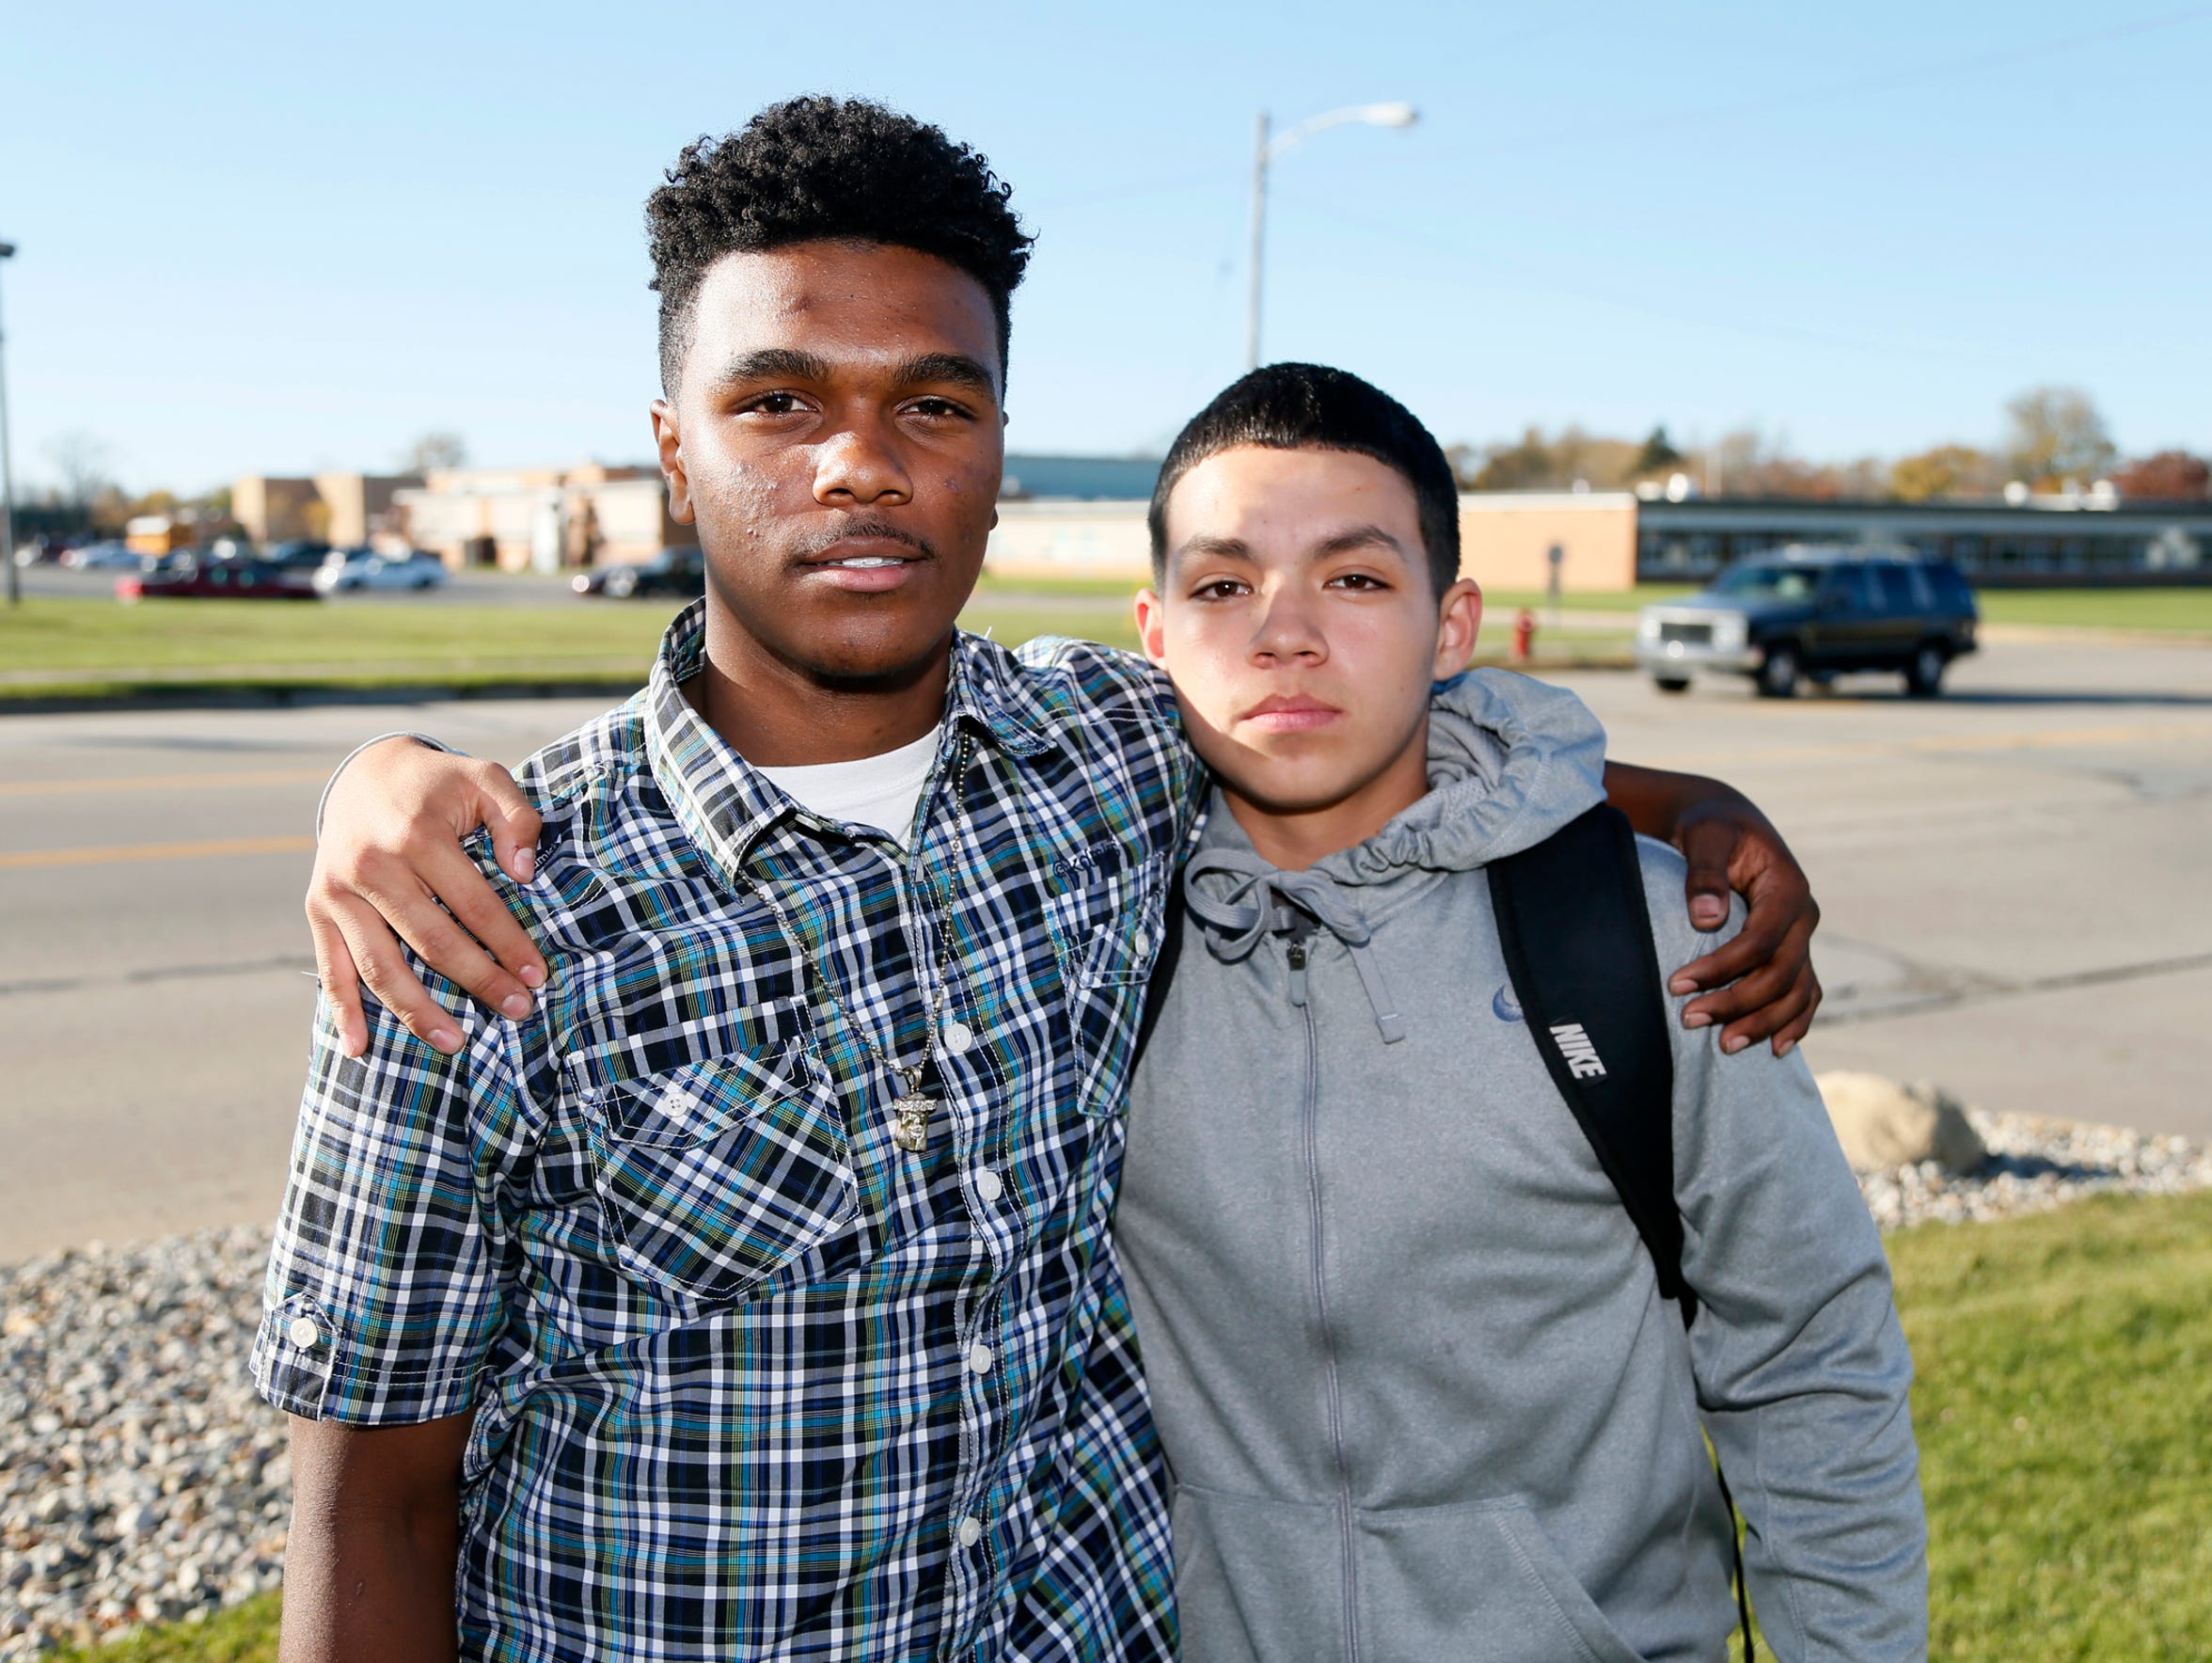 From left: South Haven students Caleb Ford, 16, and